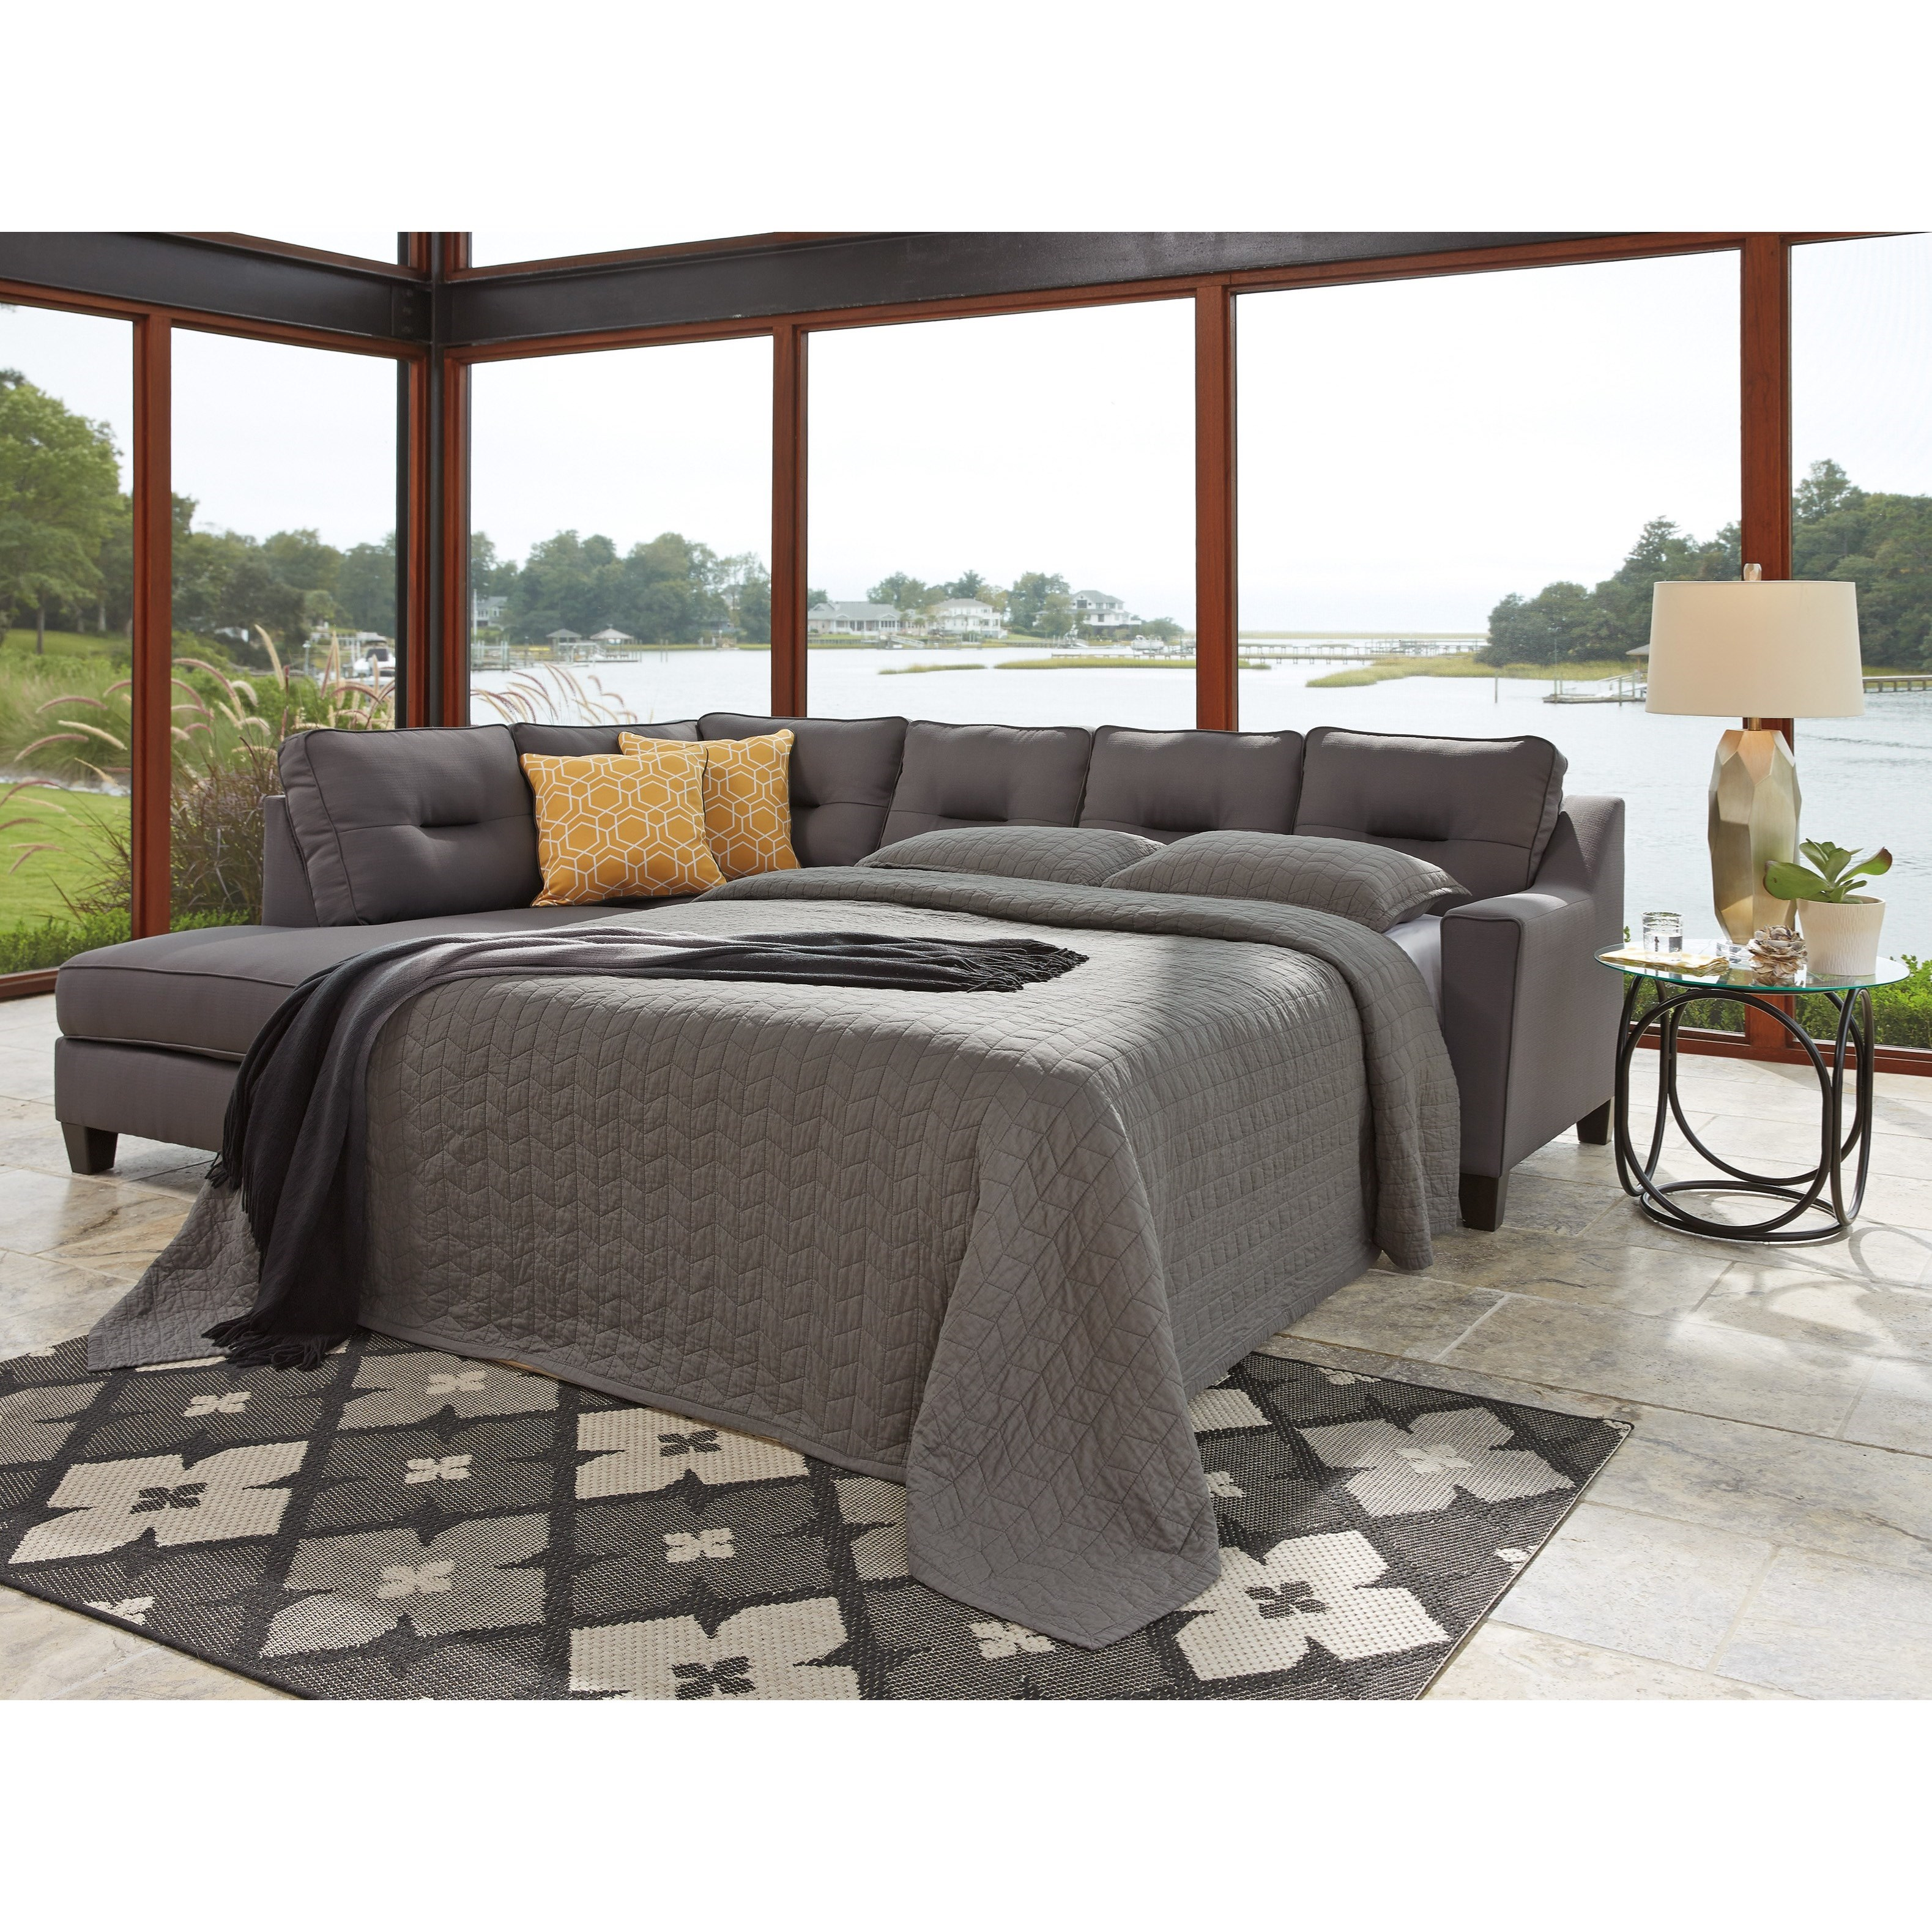 Benchcraft by ashley kirwin nuvella sectional with sleeper for Benchcraft chaise lounge